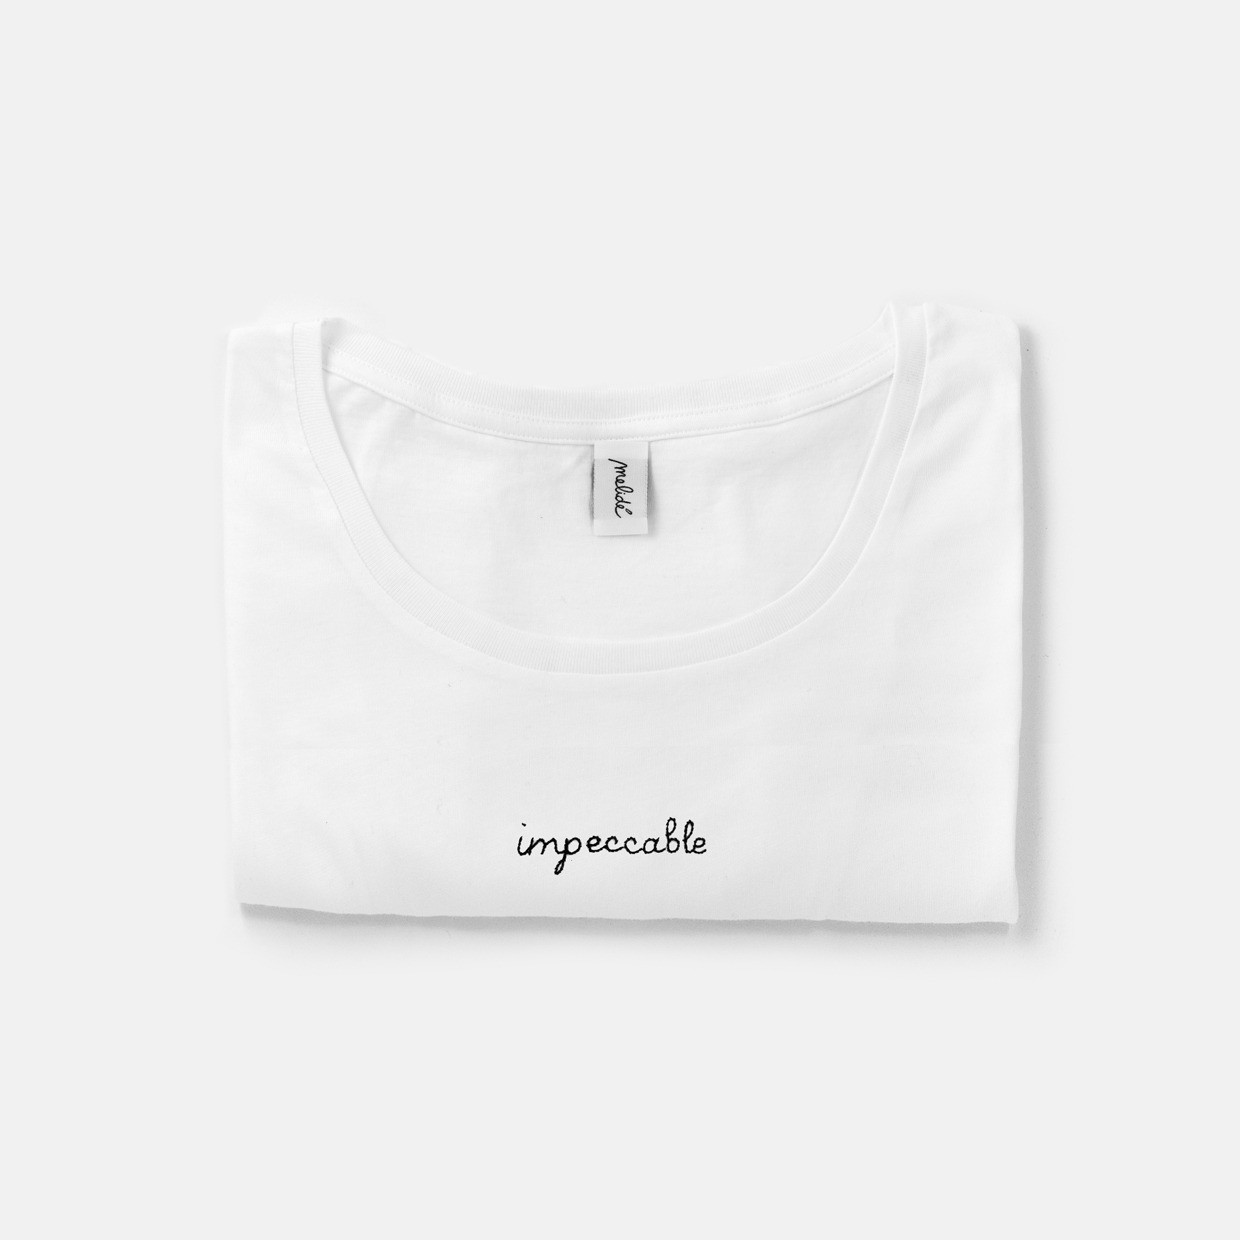 The IMPECCABLE wide neck tee